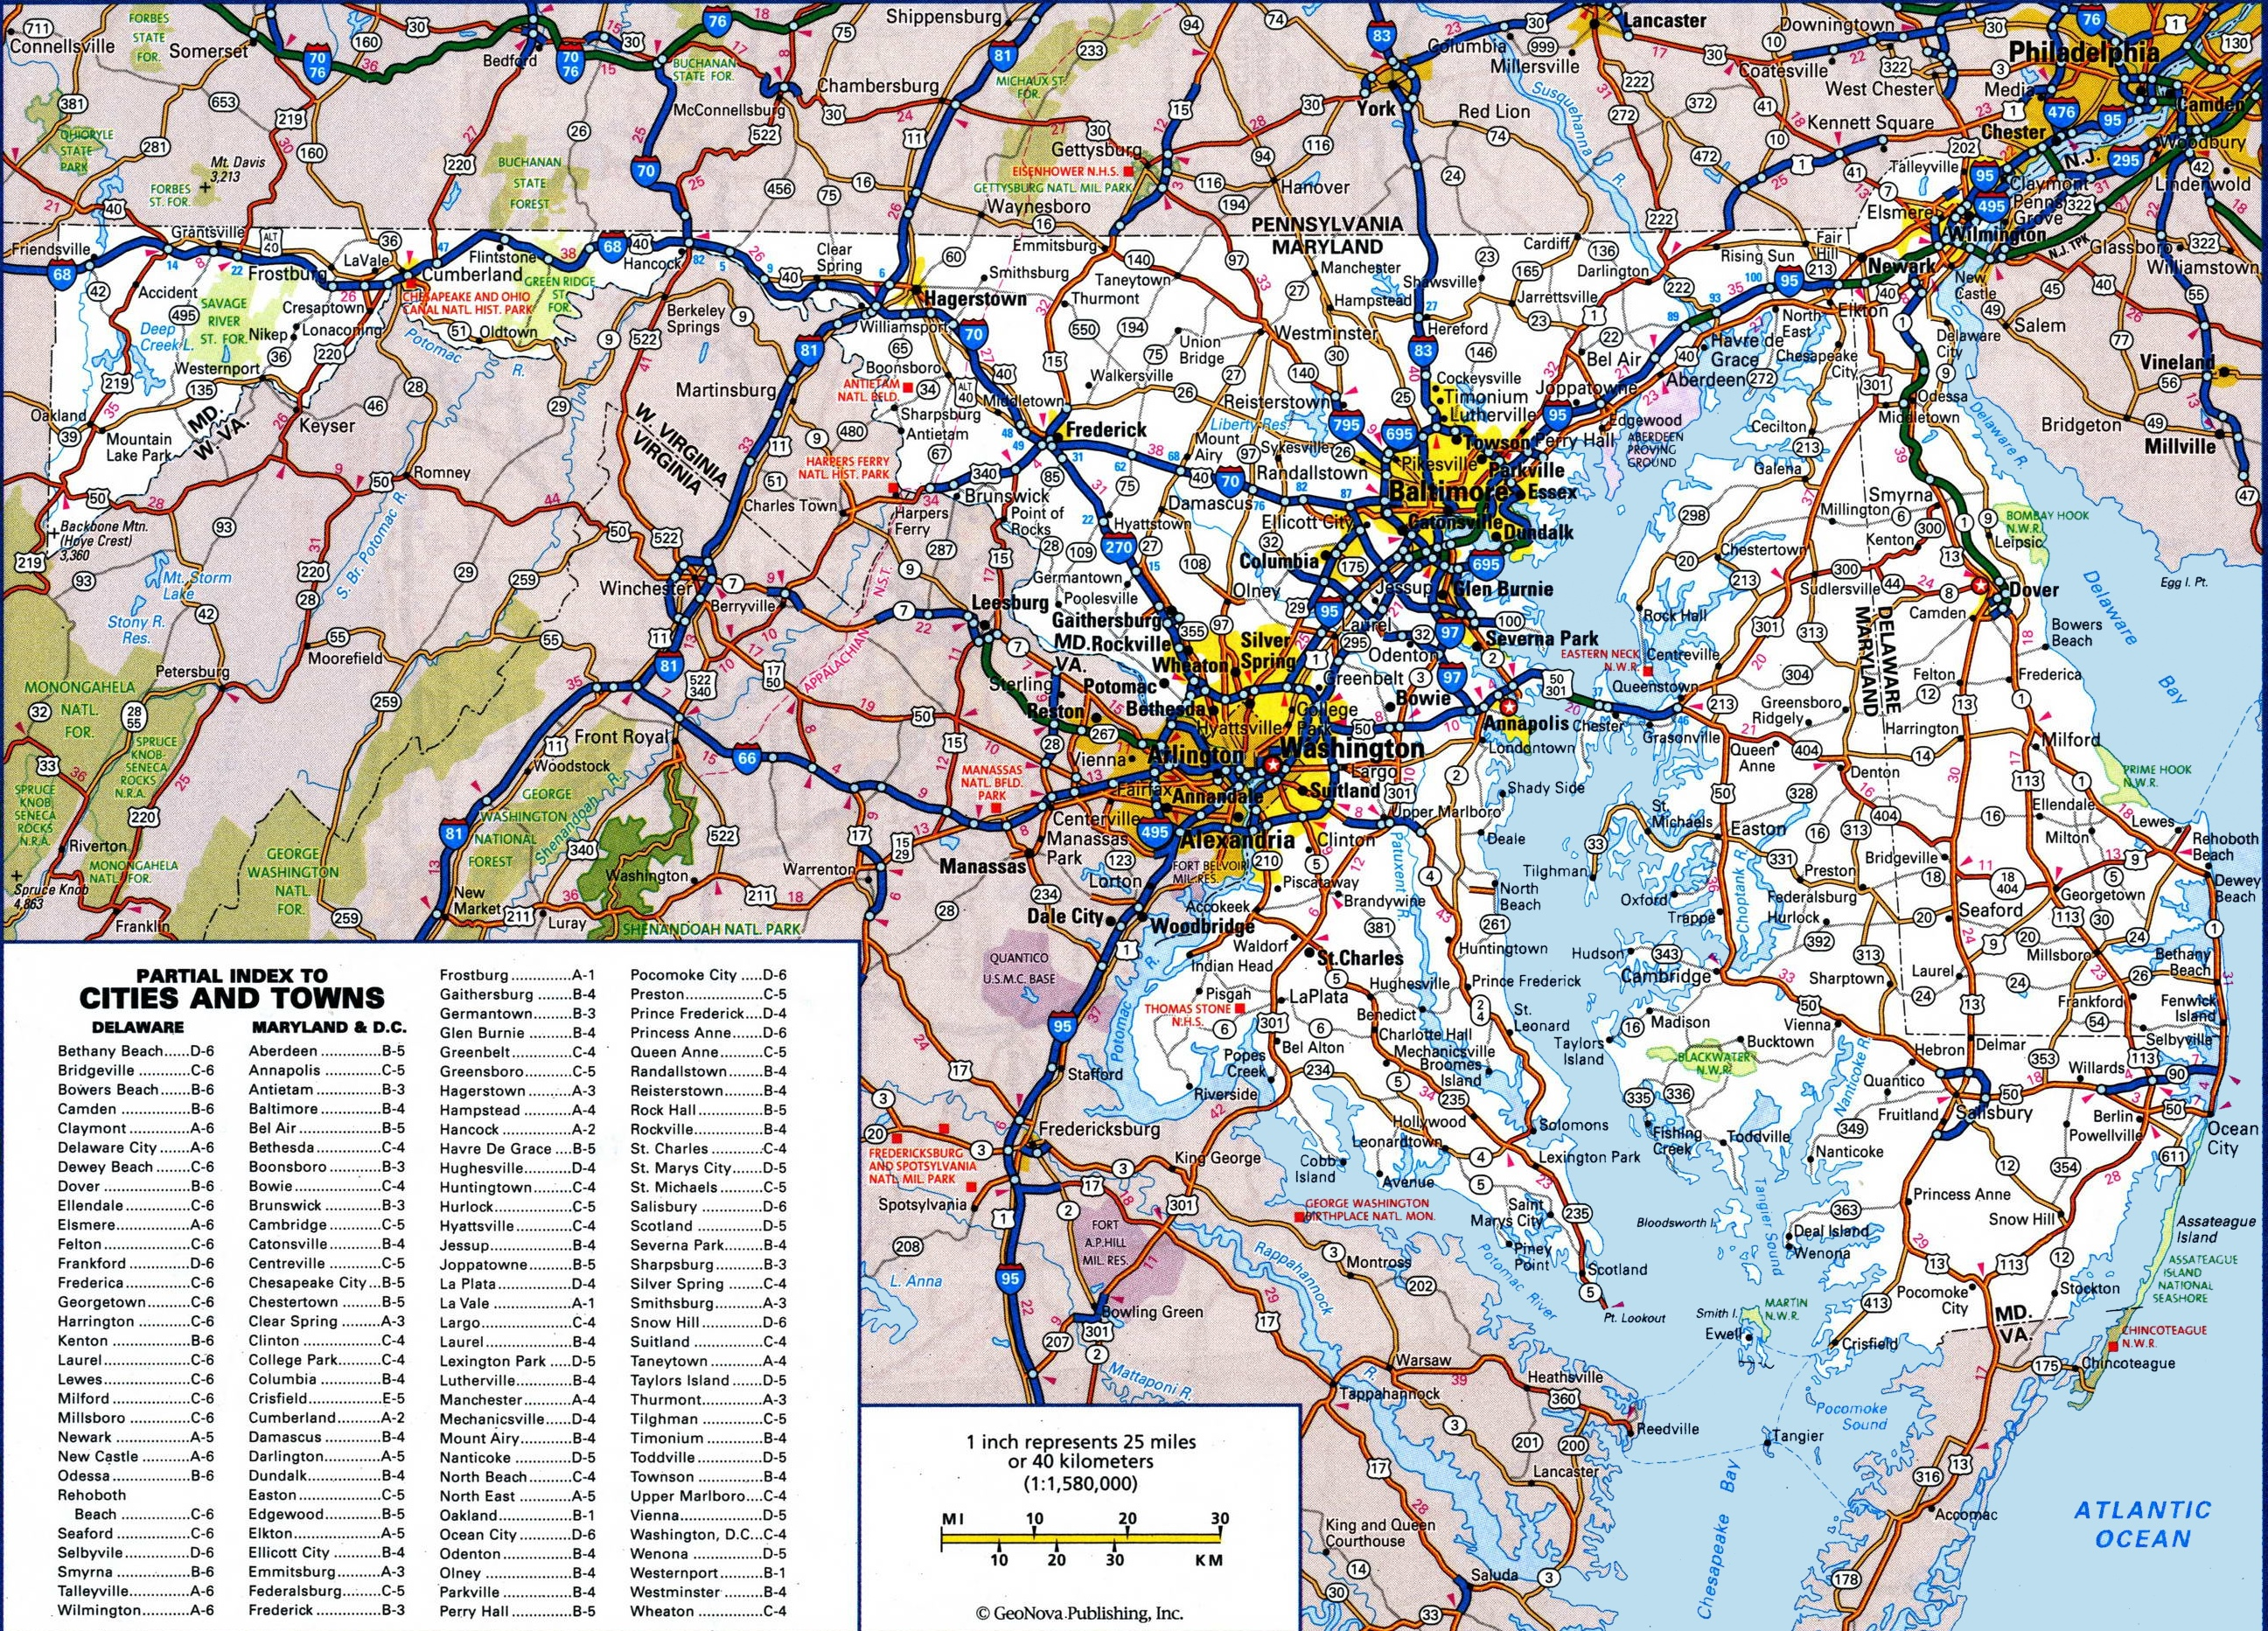 Large Detailed Map Of Maryland With Cities And Towns - Large detailed us map